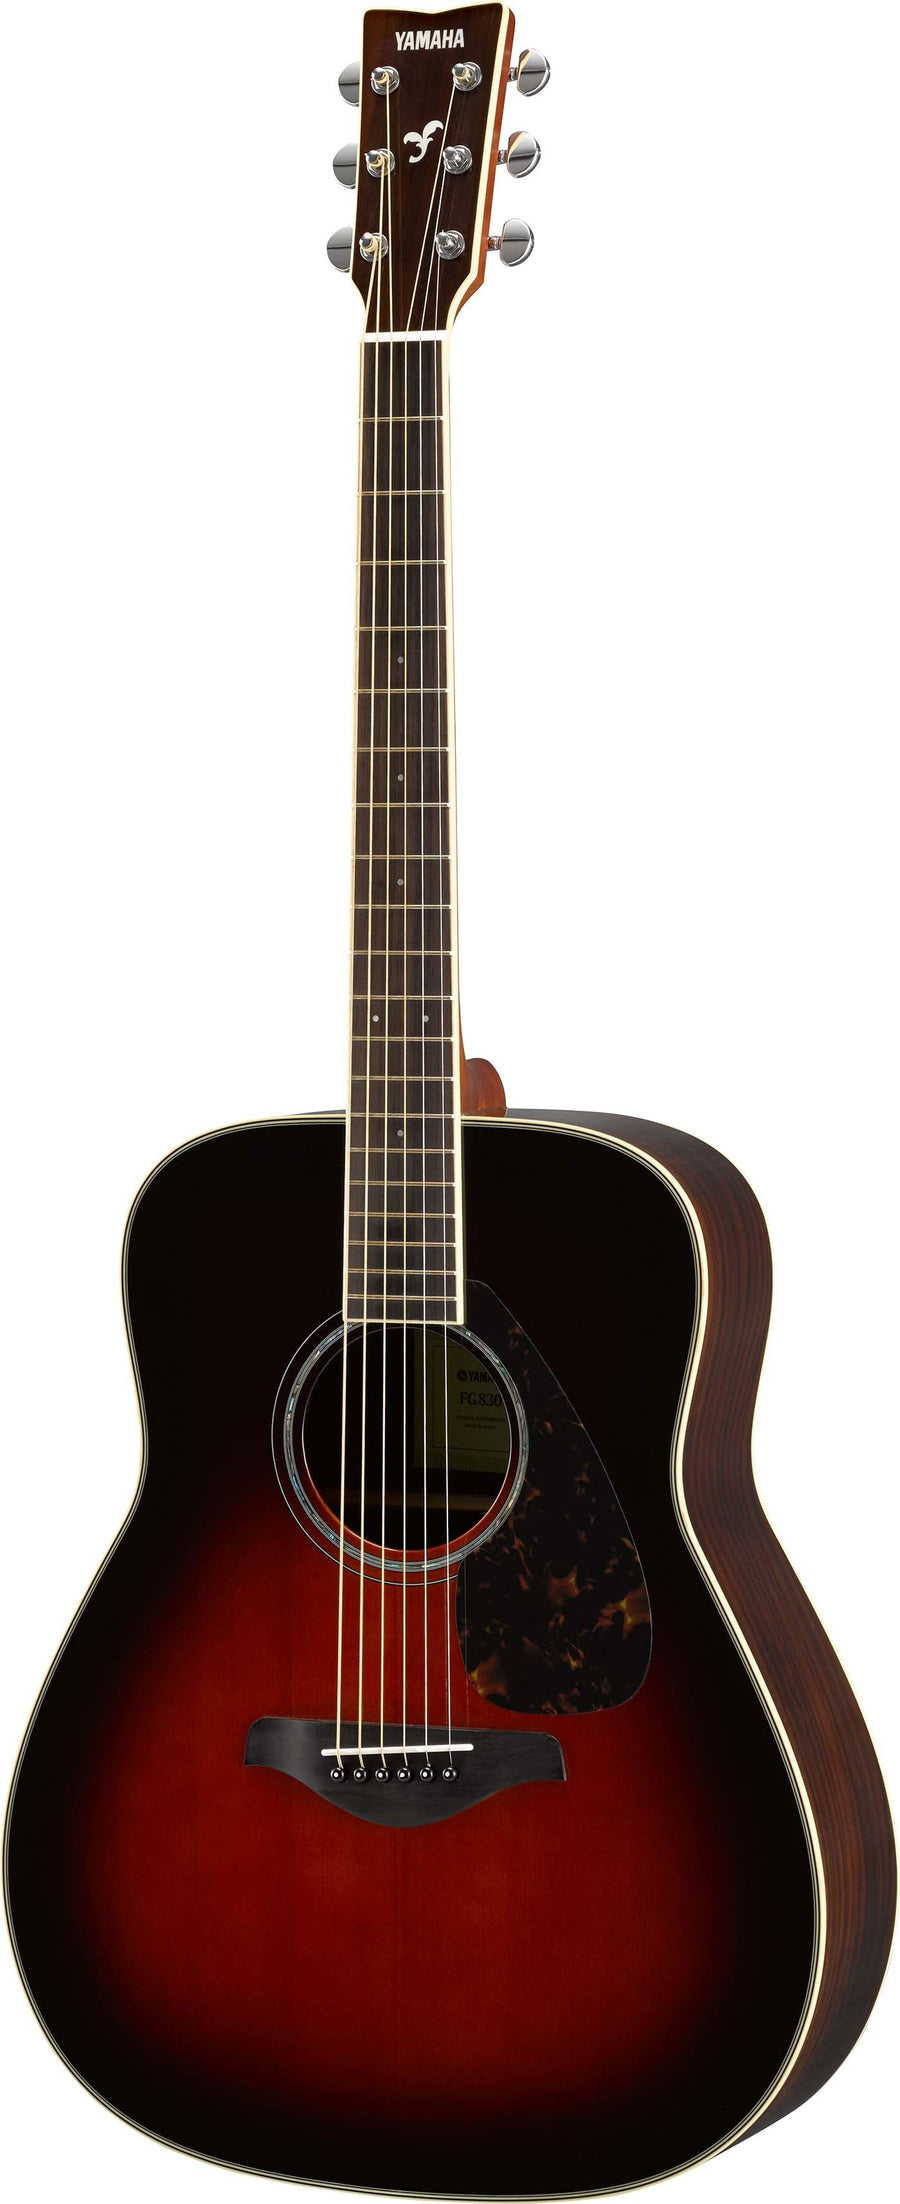 Yamaha FG830 Tobacco Brown Sunburst Acoustic Guitar